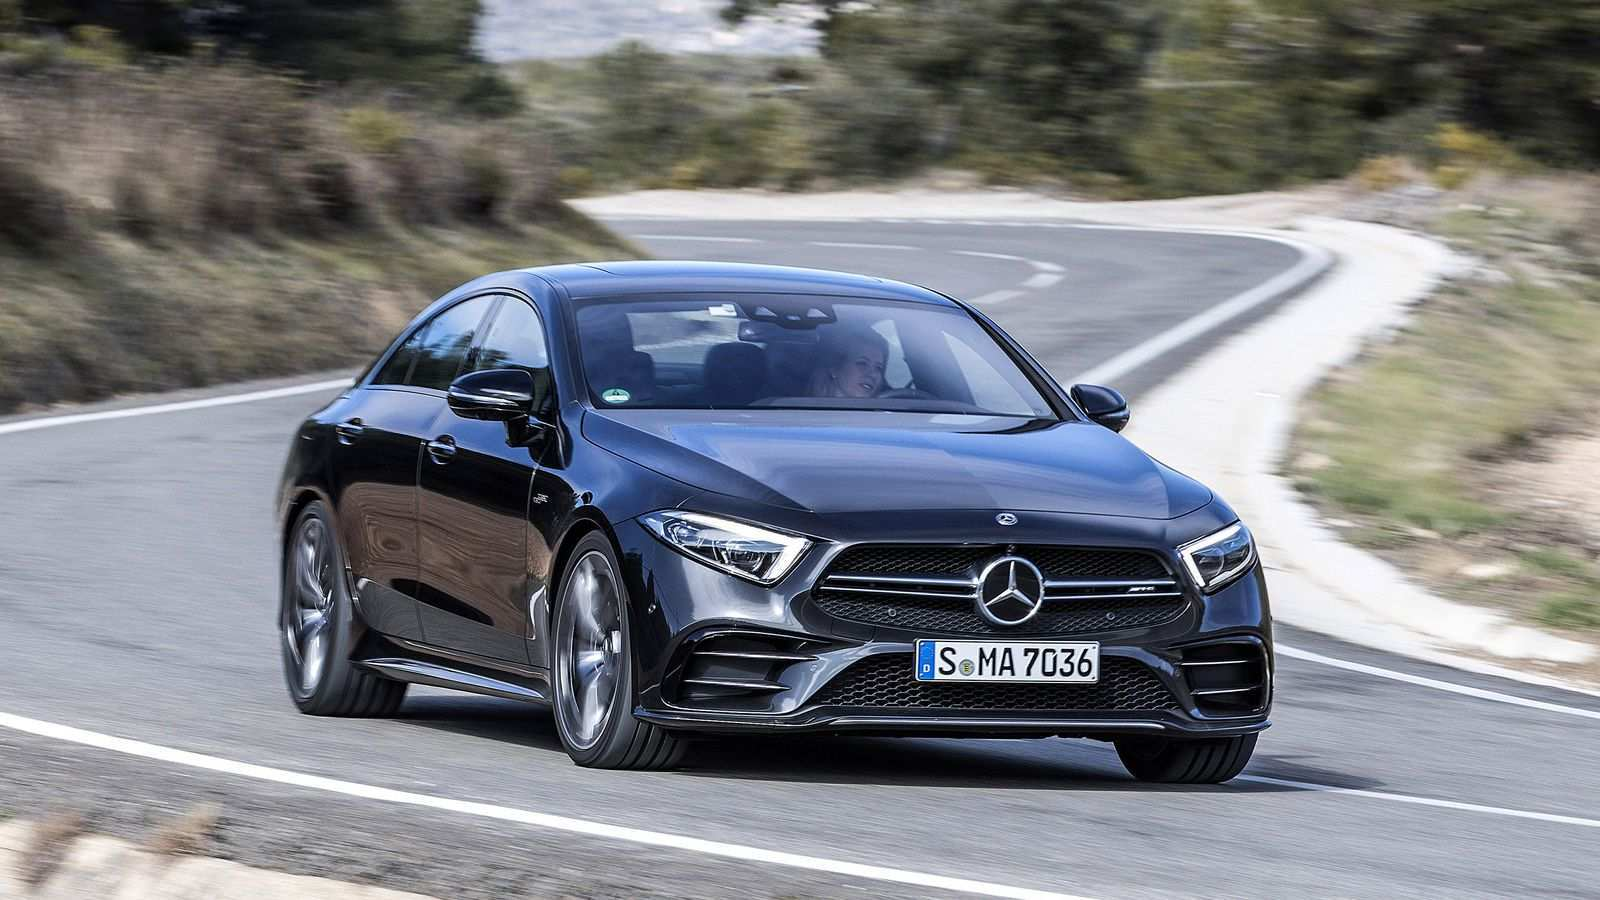 74 The Best Mercedes 2019 Cls Exterior And Interior